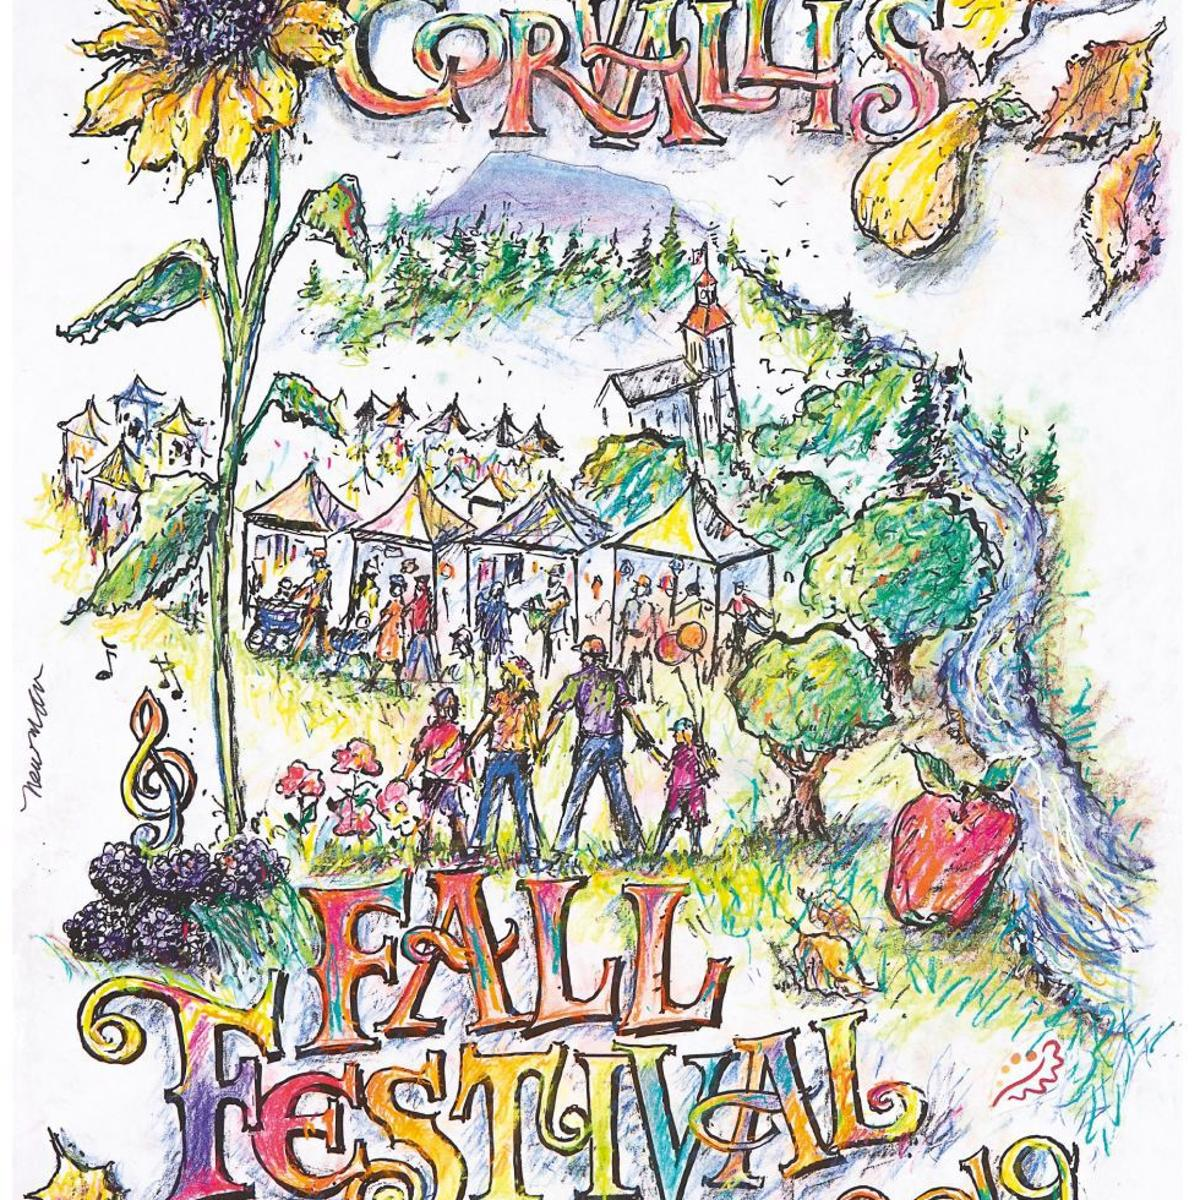 Corvallis Fall Festival: Newman\'s work captures colors.